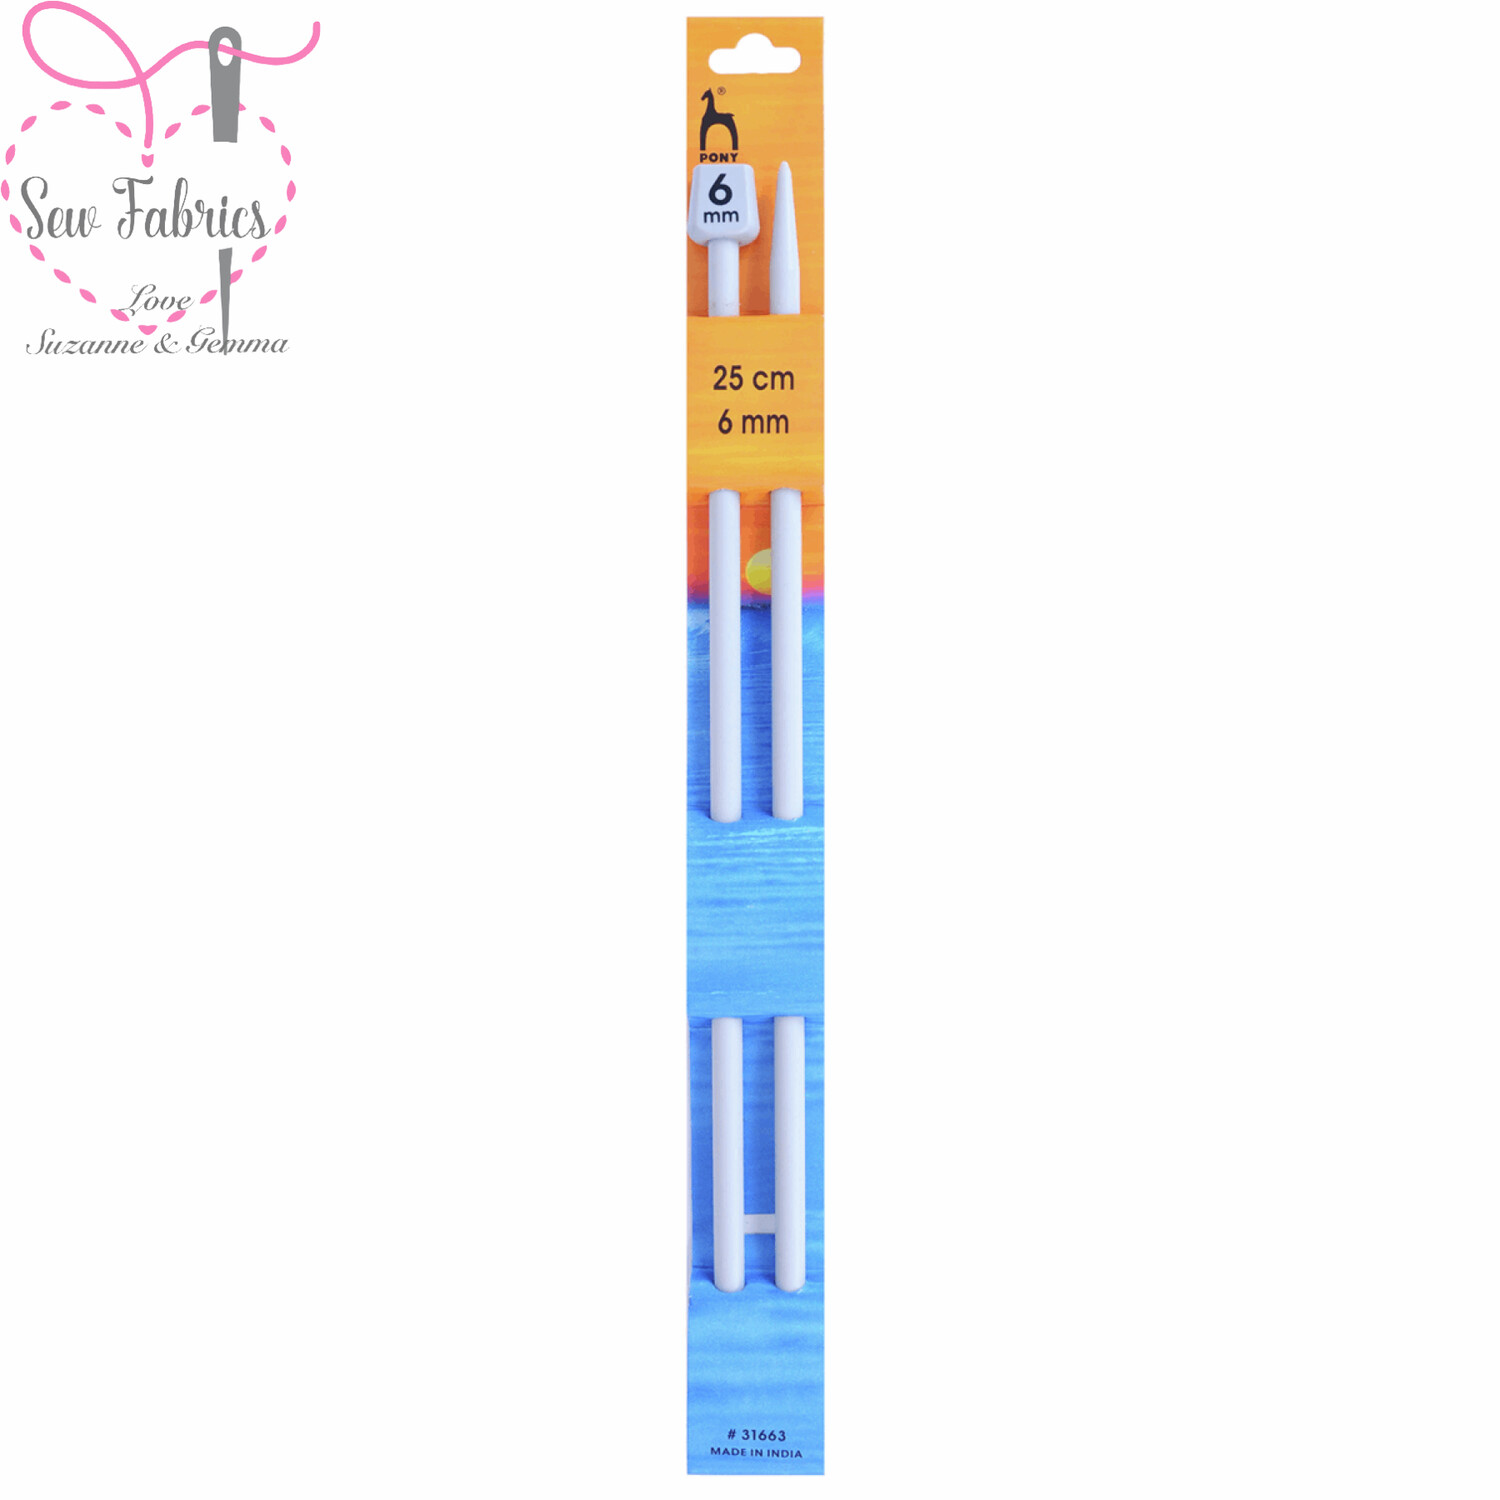 Pony Single Ended 25cm Classic Grey Knitting Needles / Pins in Size 6mm. Smooth Light Knitting Needles.